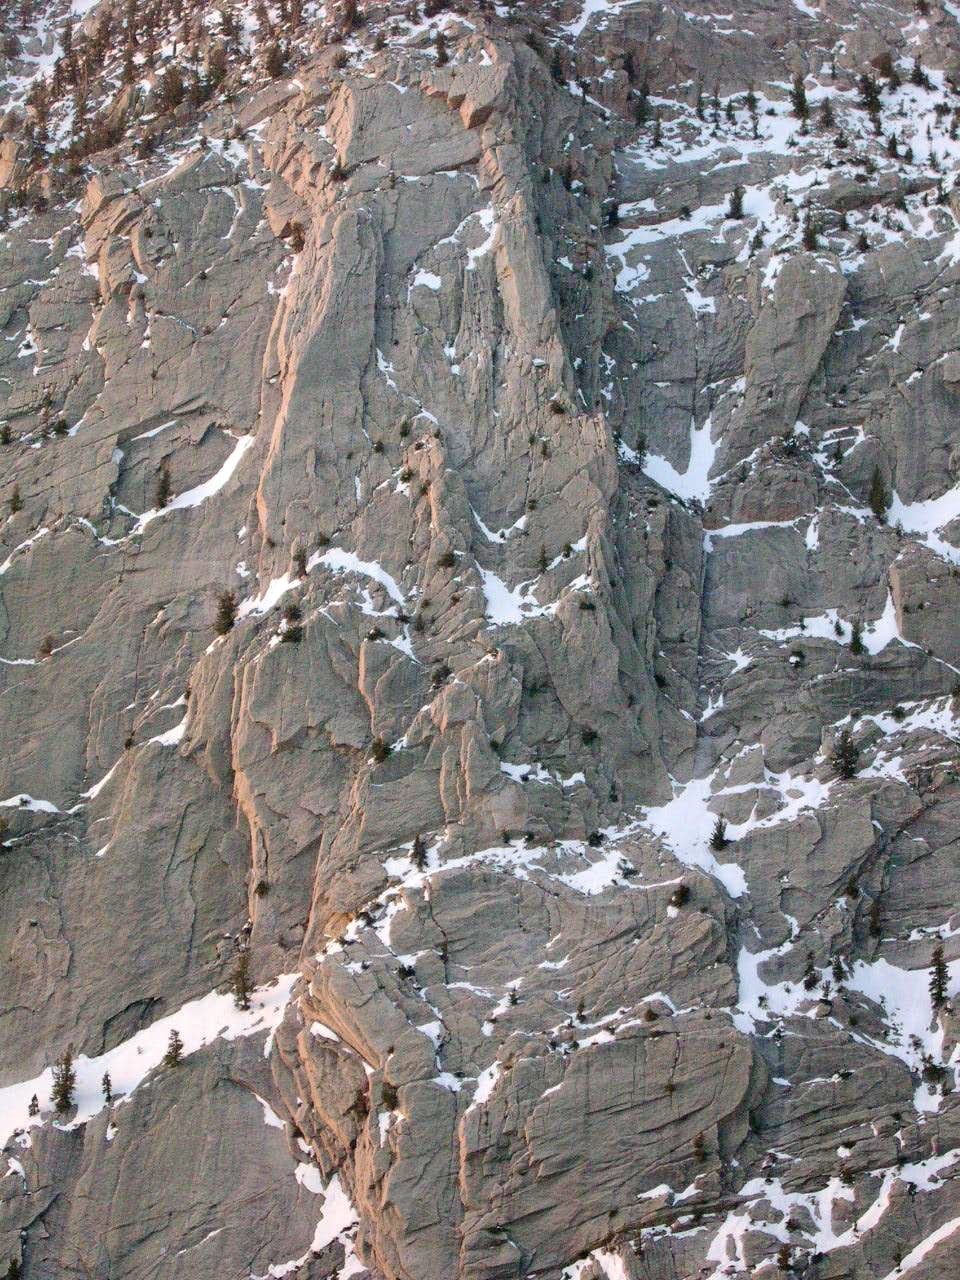 Jim's Buttress